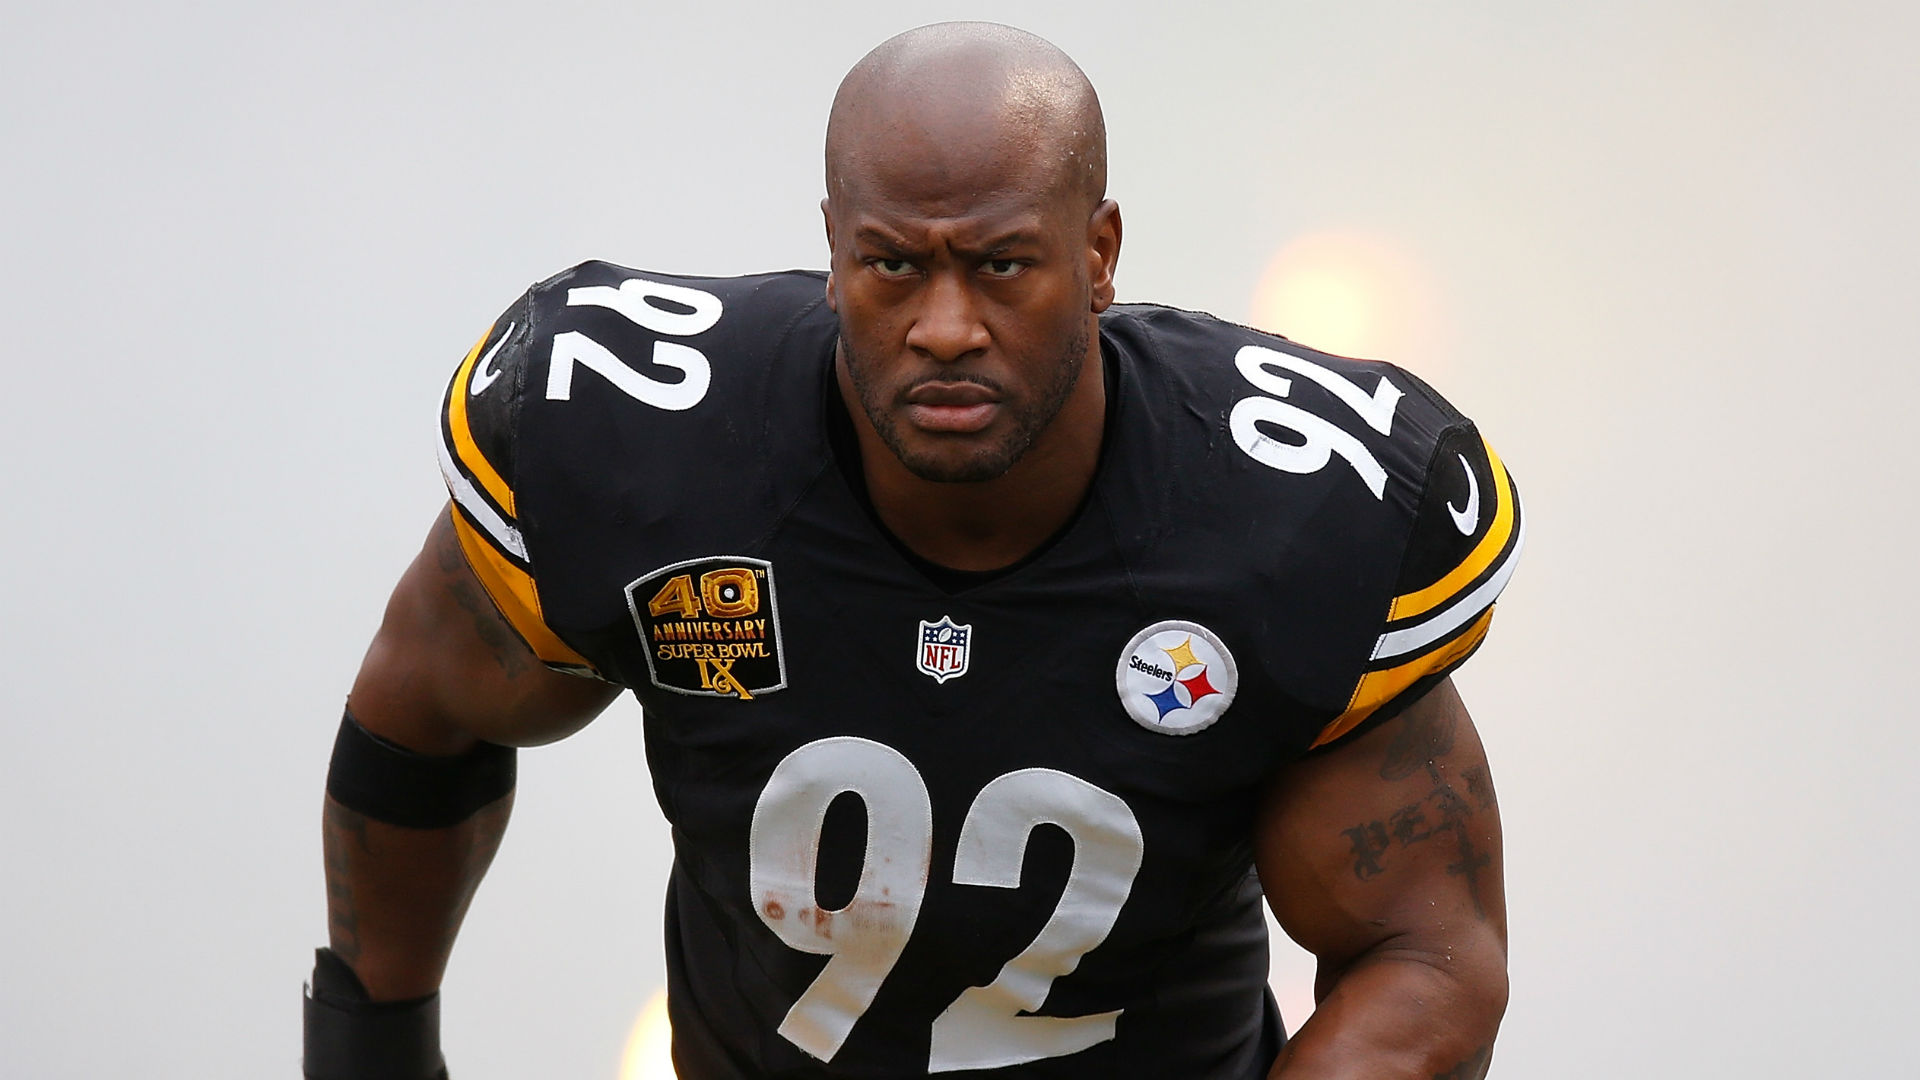 Just another ridiculous day in the gym for James Harrison